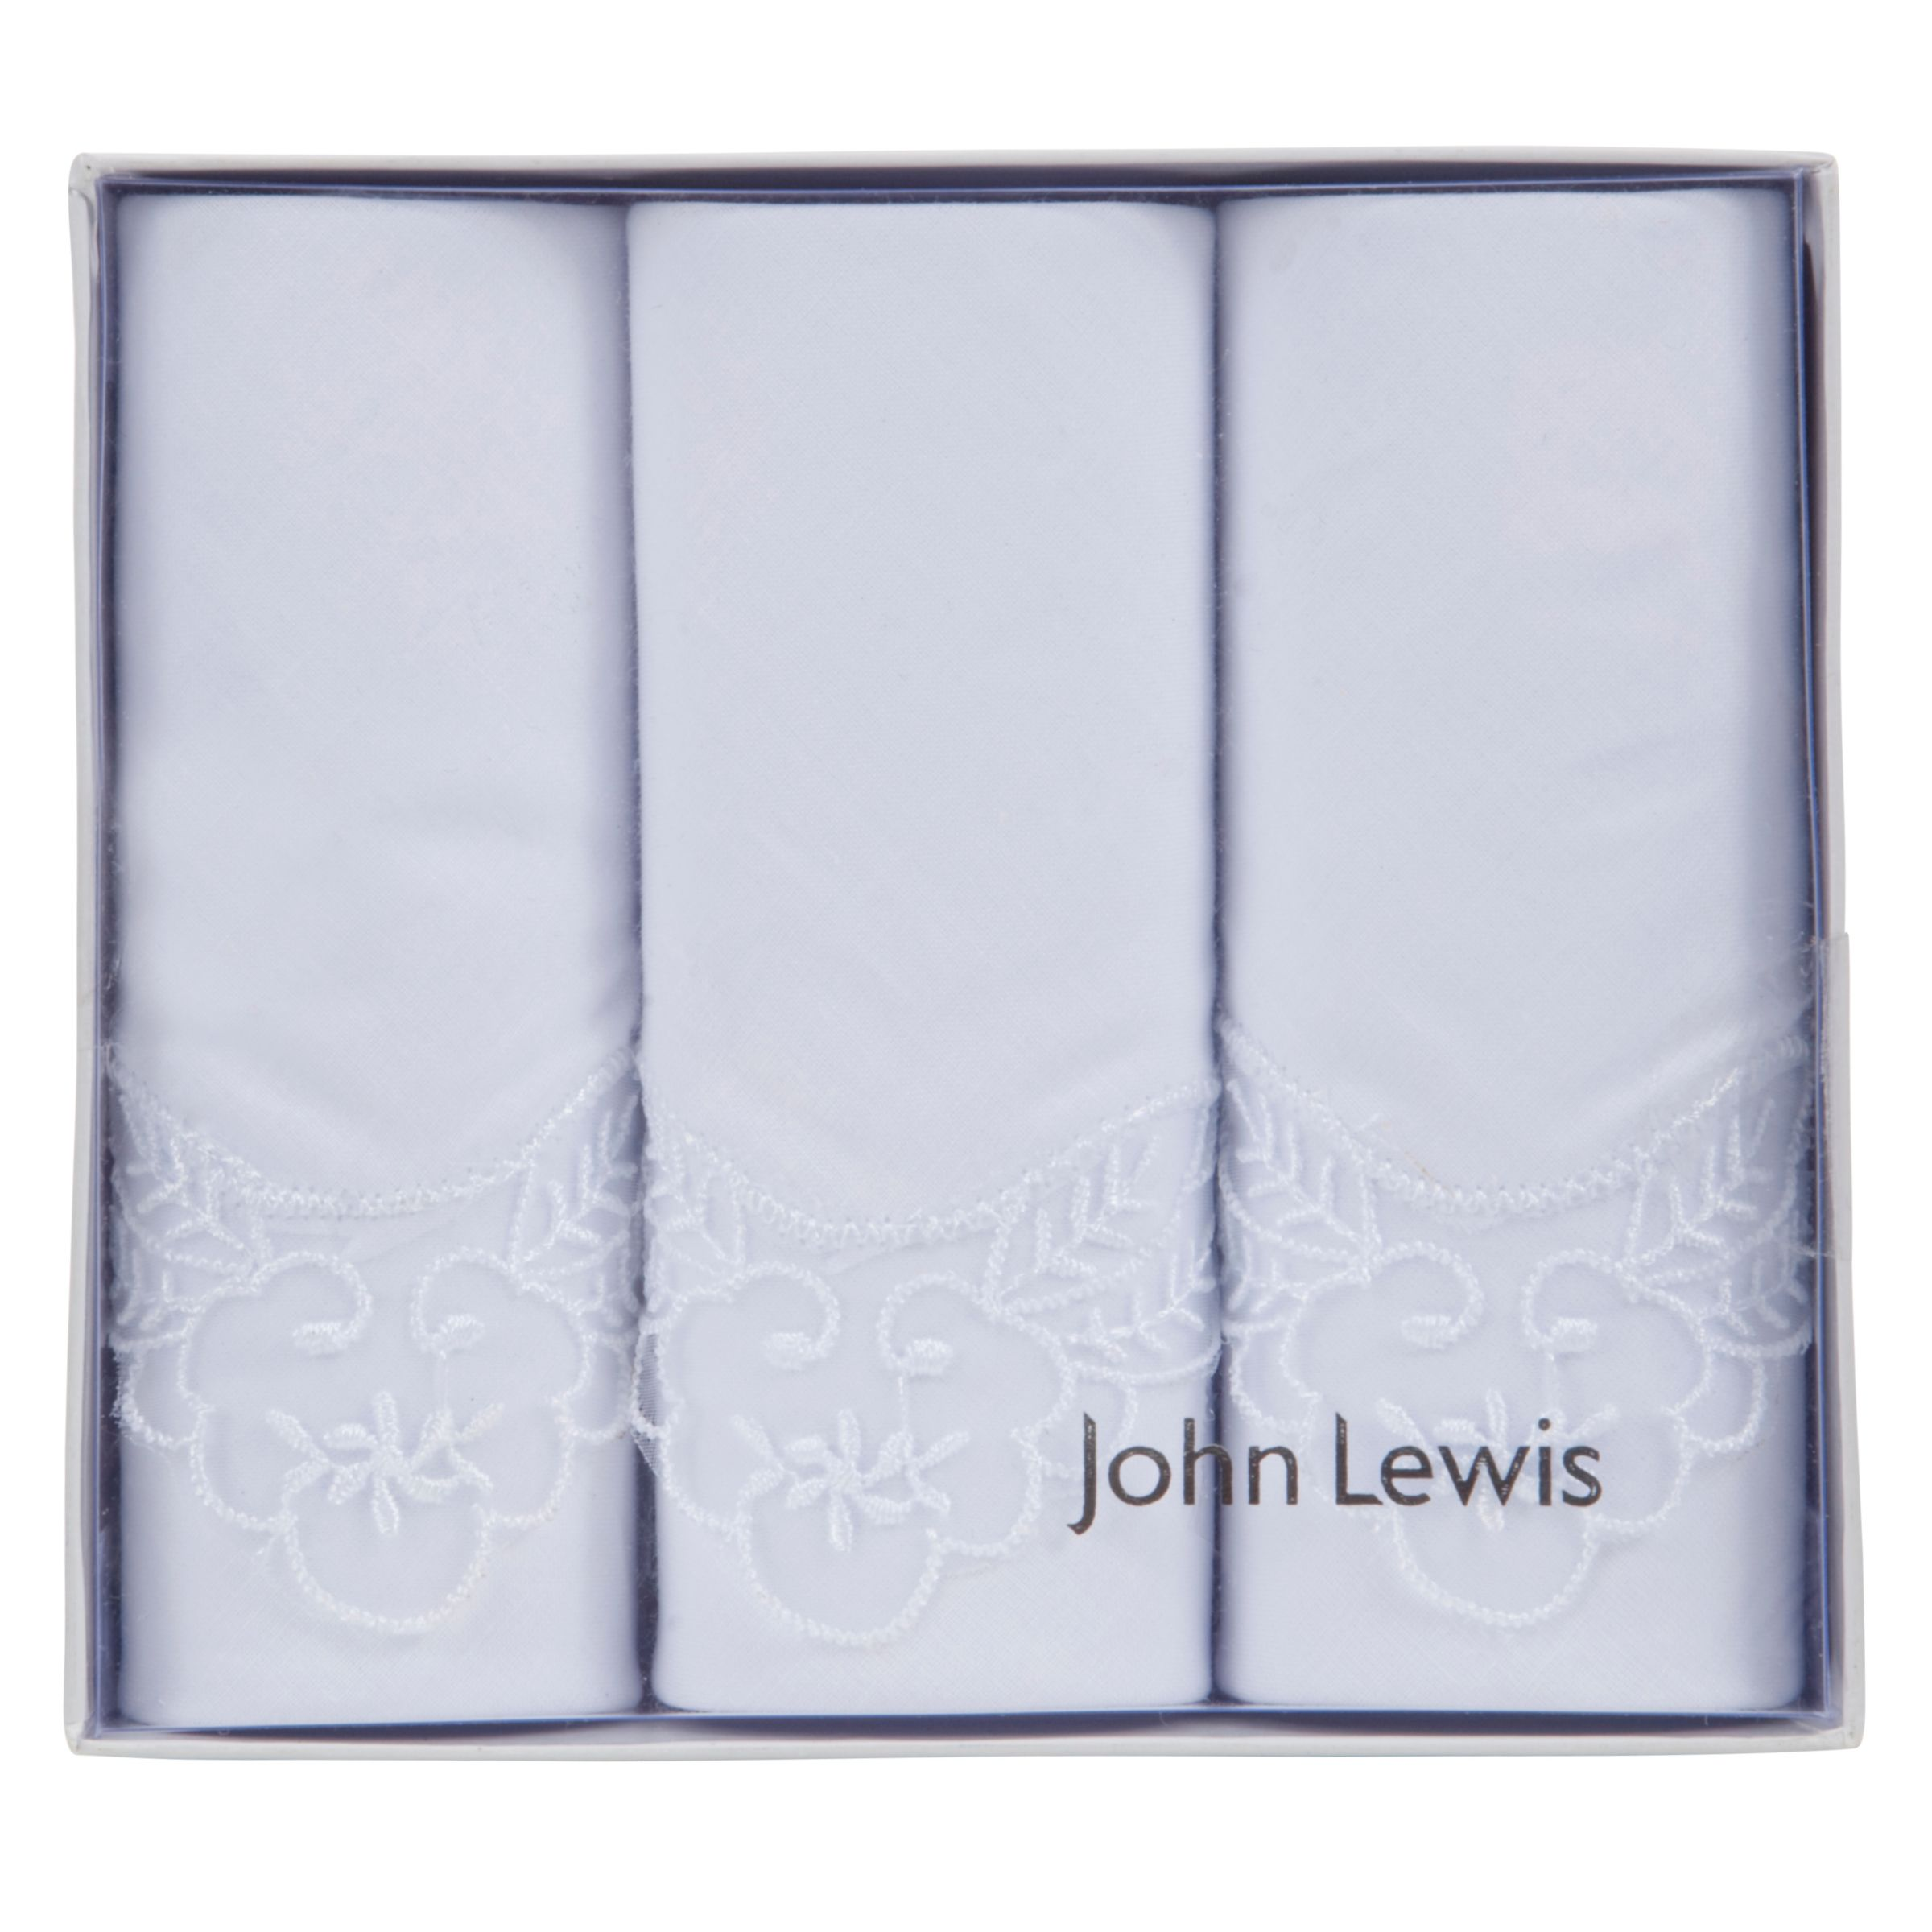 John Lewis Wedding Gift List Review : Buy John Lewis Lace Edge Detail Handkerchiefs, Pack of 3, White John ...